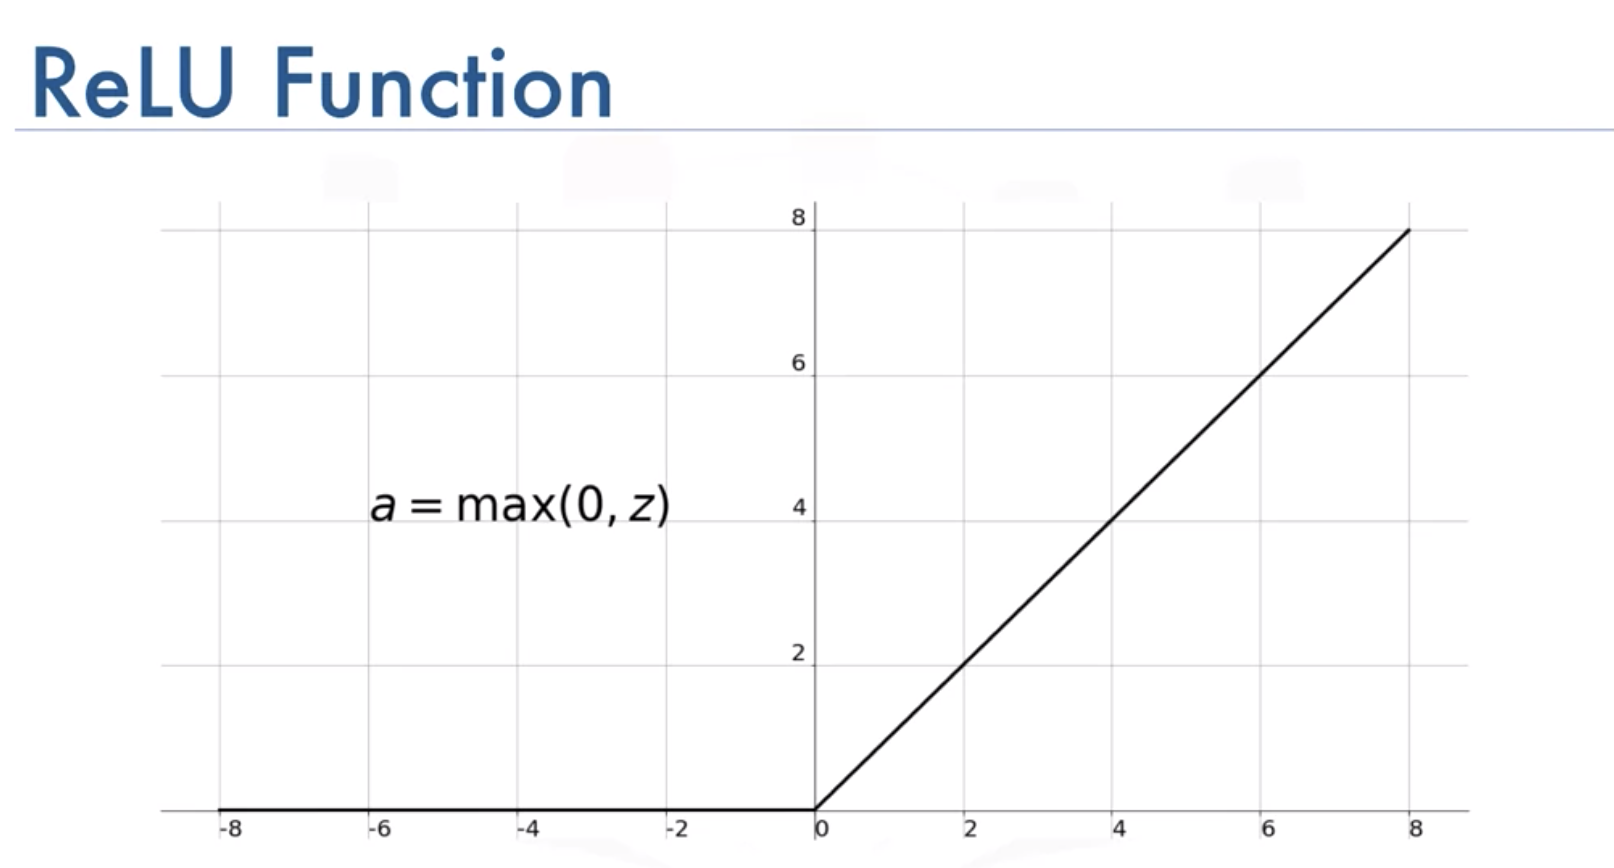 relu function graphed